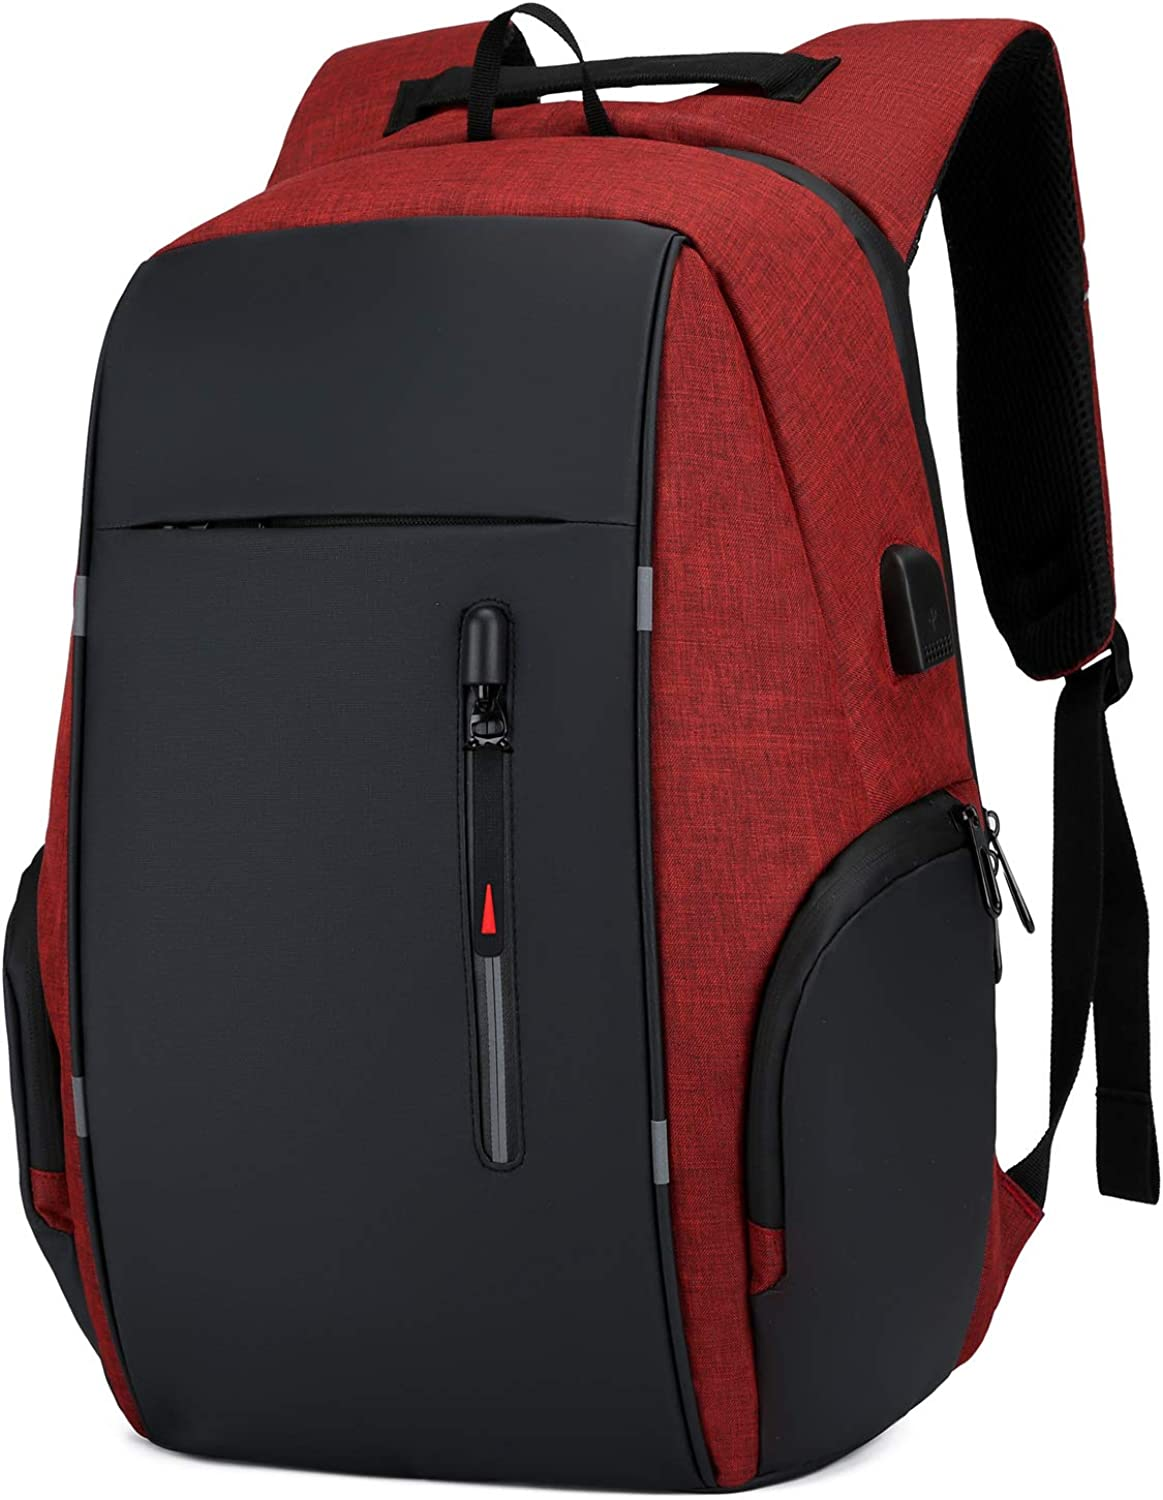 15.6 Inch Laptop Backpack for Men Women Anti-Theft Business Bag with USB Charging Port